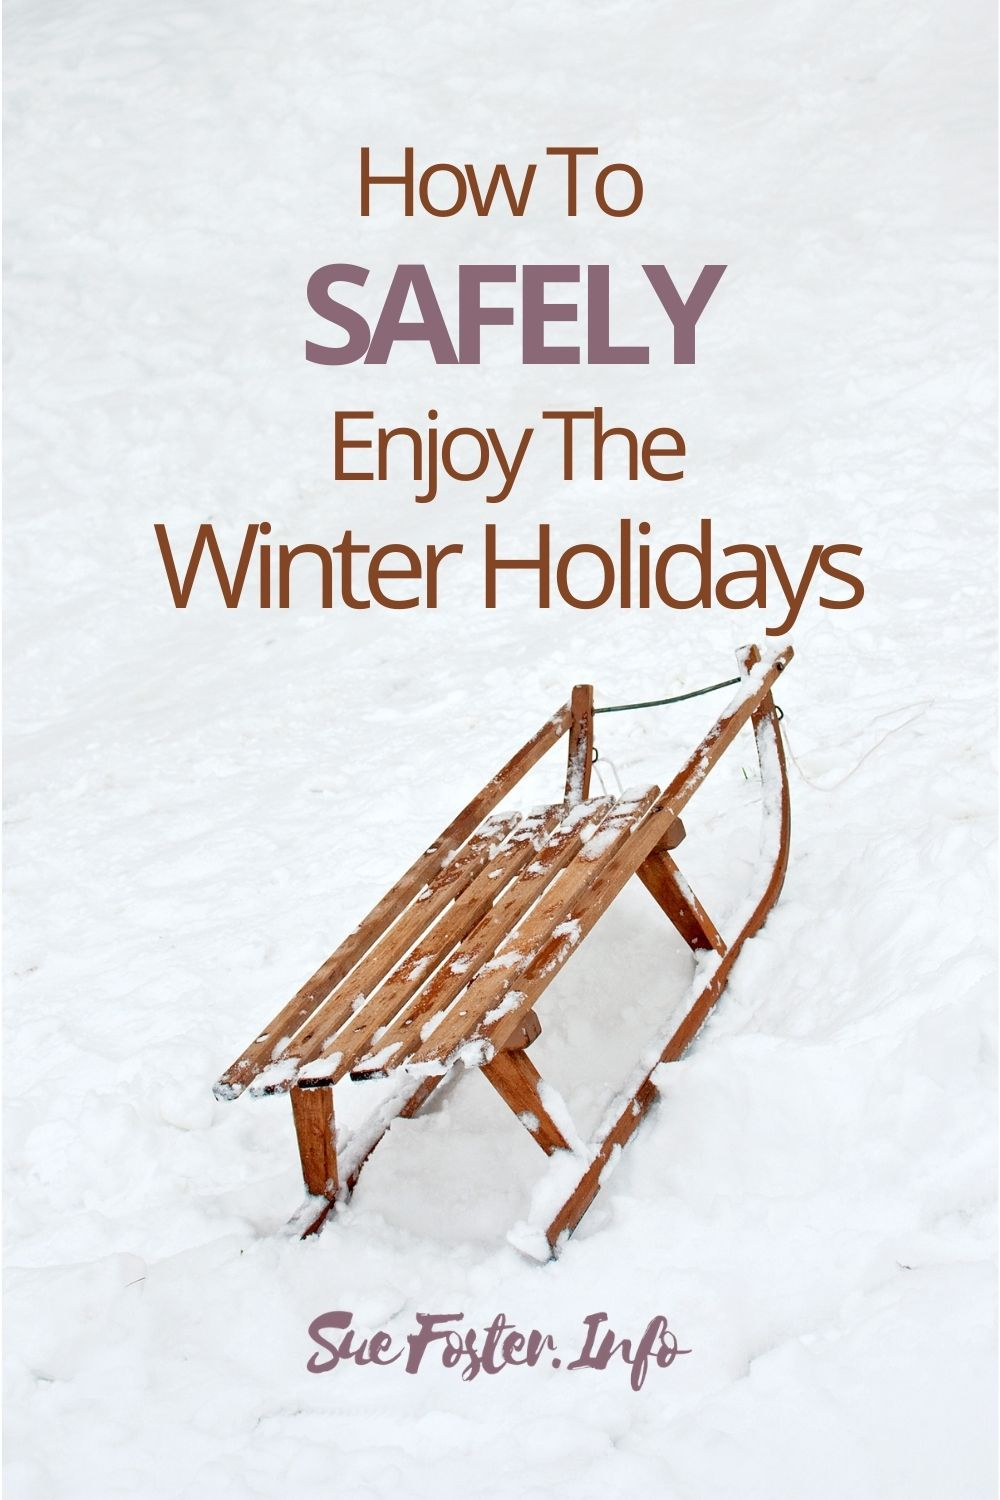 How to safely enjoy the Winter holidays